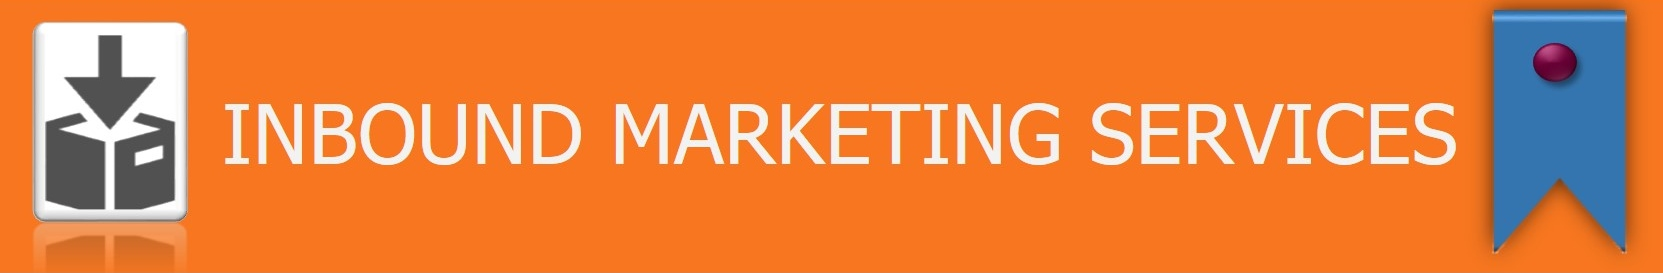 ENACT_Inbound_Marketing_Services